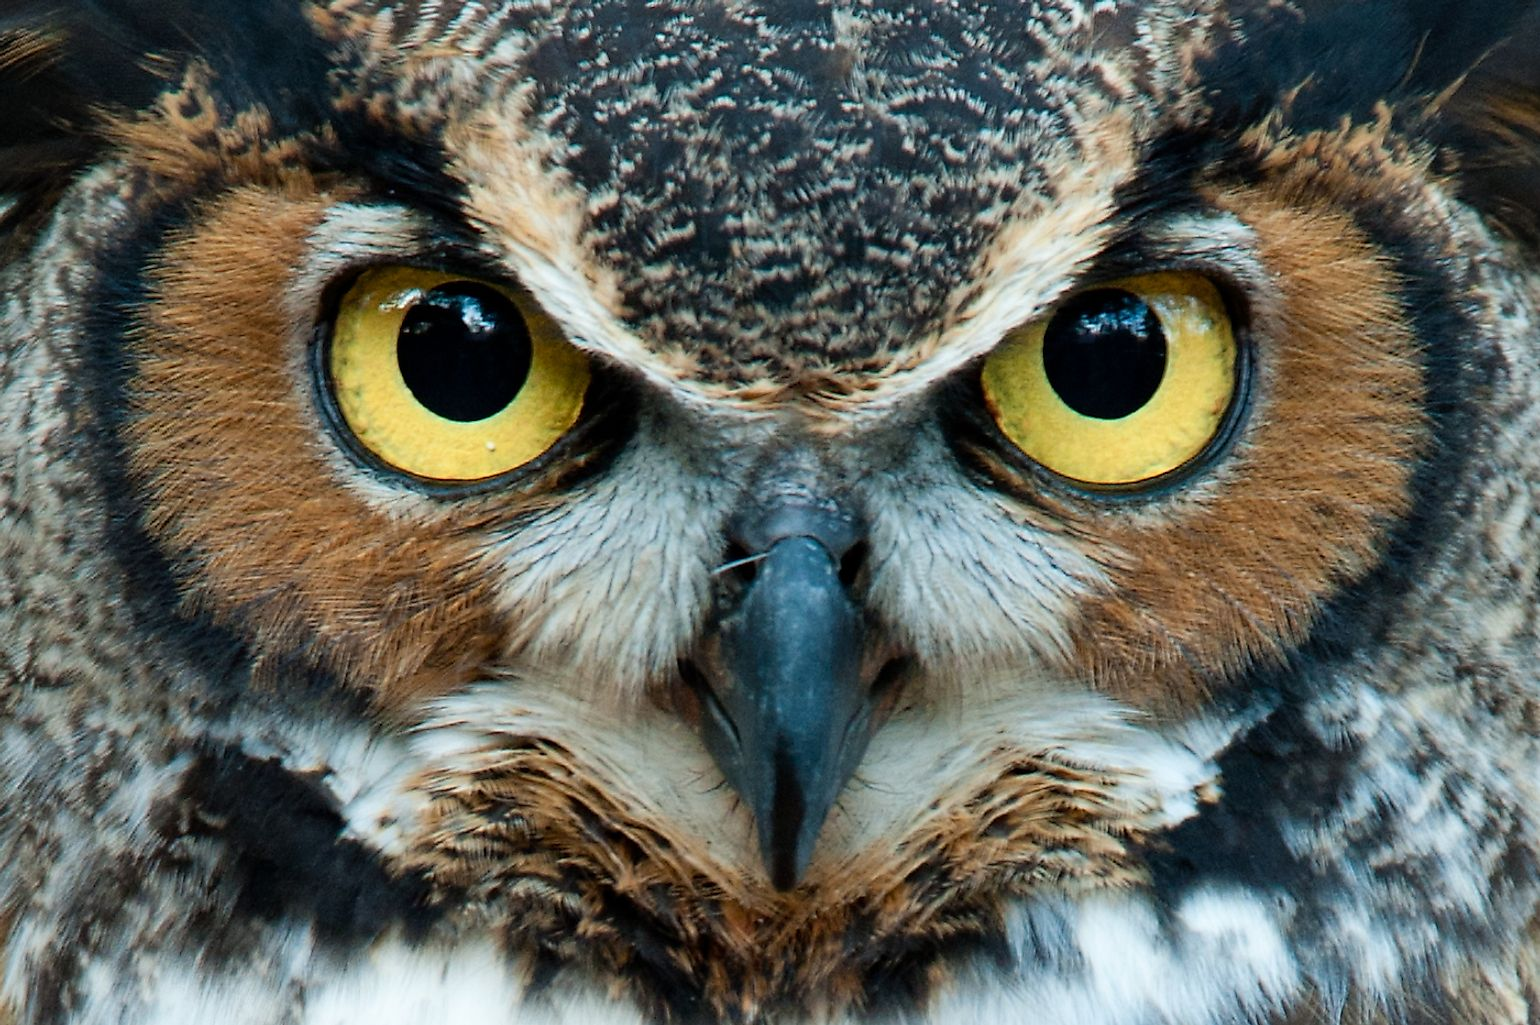 Great Horned Owl staring with golden eyes. Image credit: Jadimages/Shutterstock.com